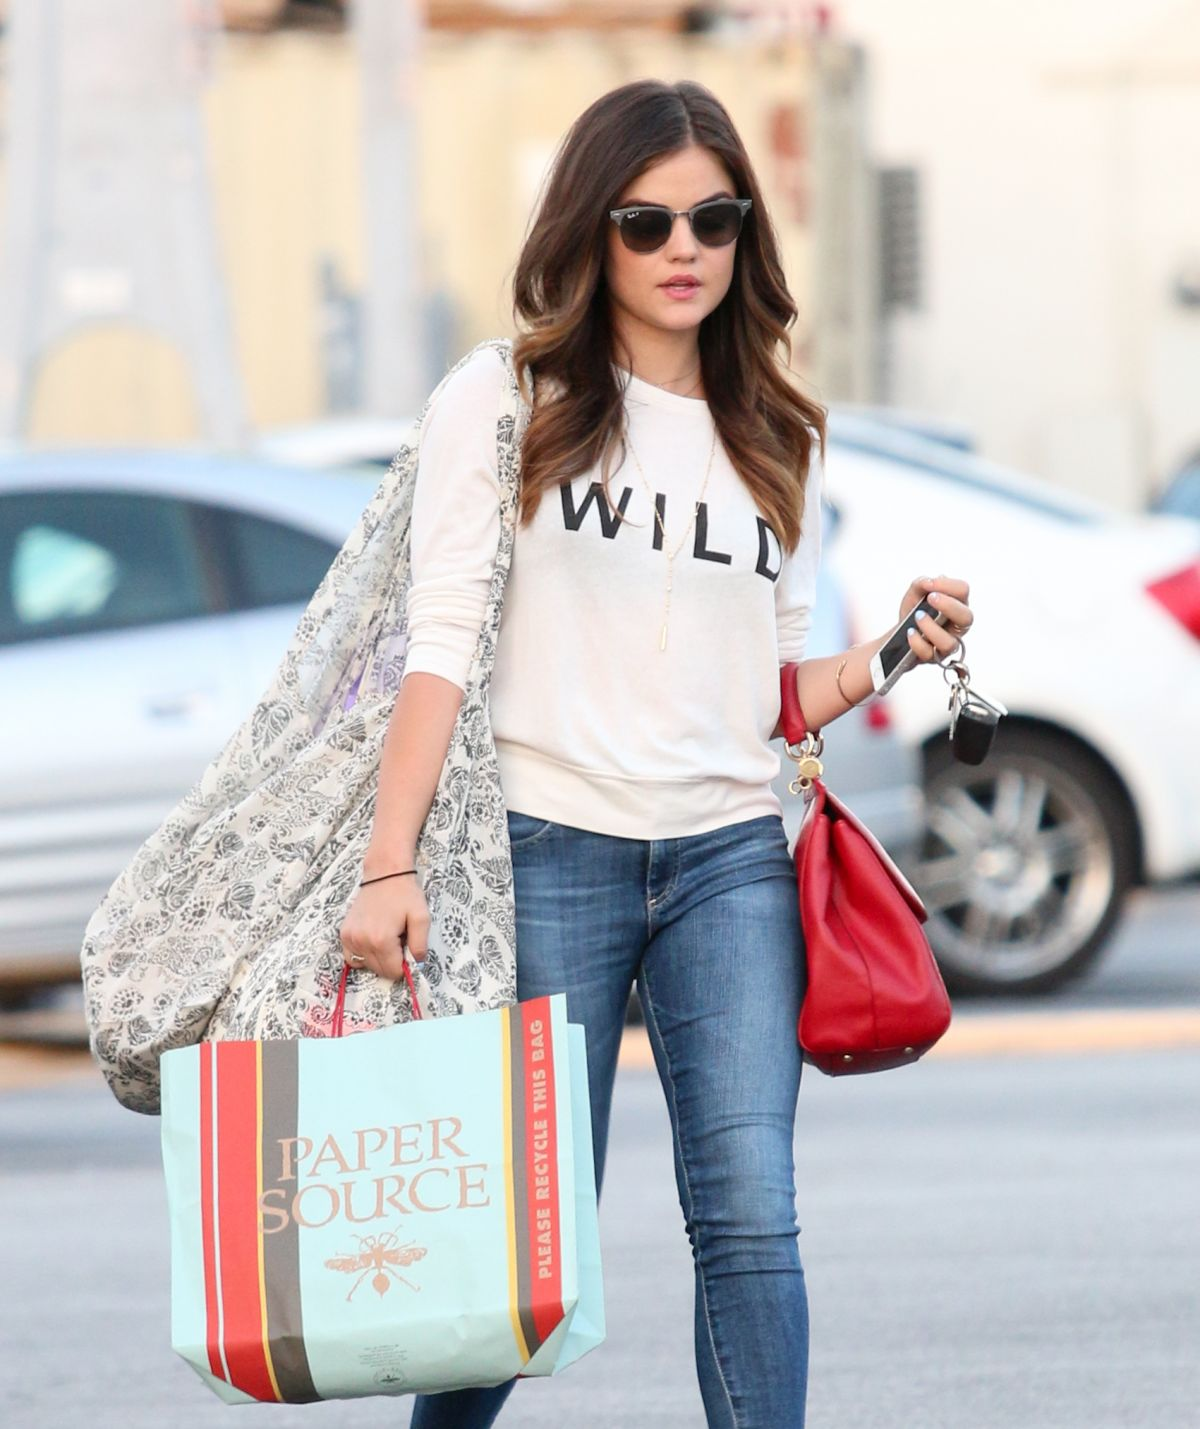 LUCY HALE in Jeans Out and About in Studio City - HawtCelebs